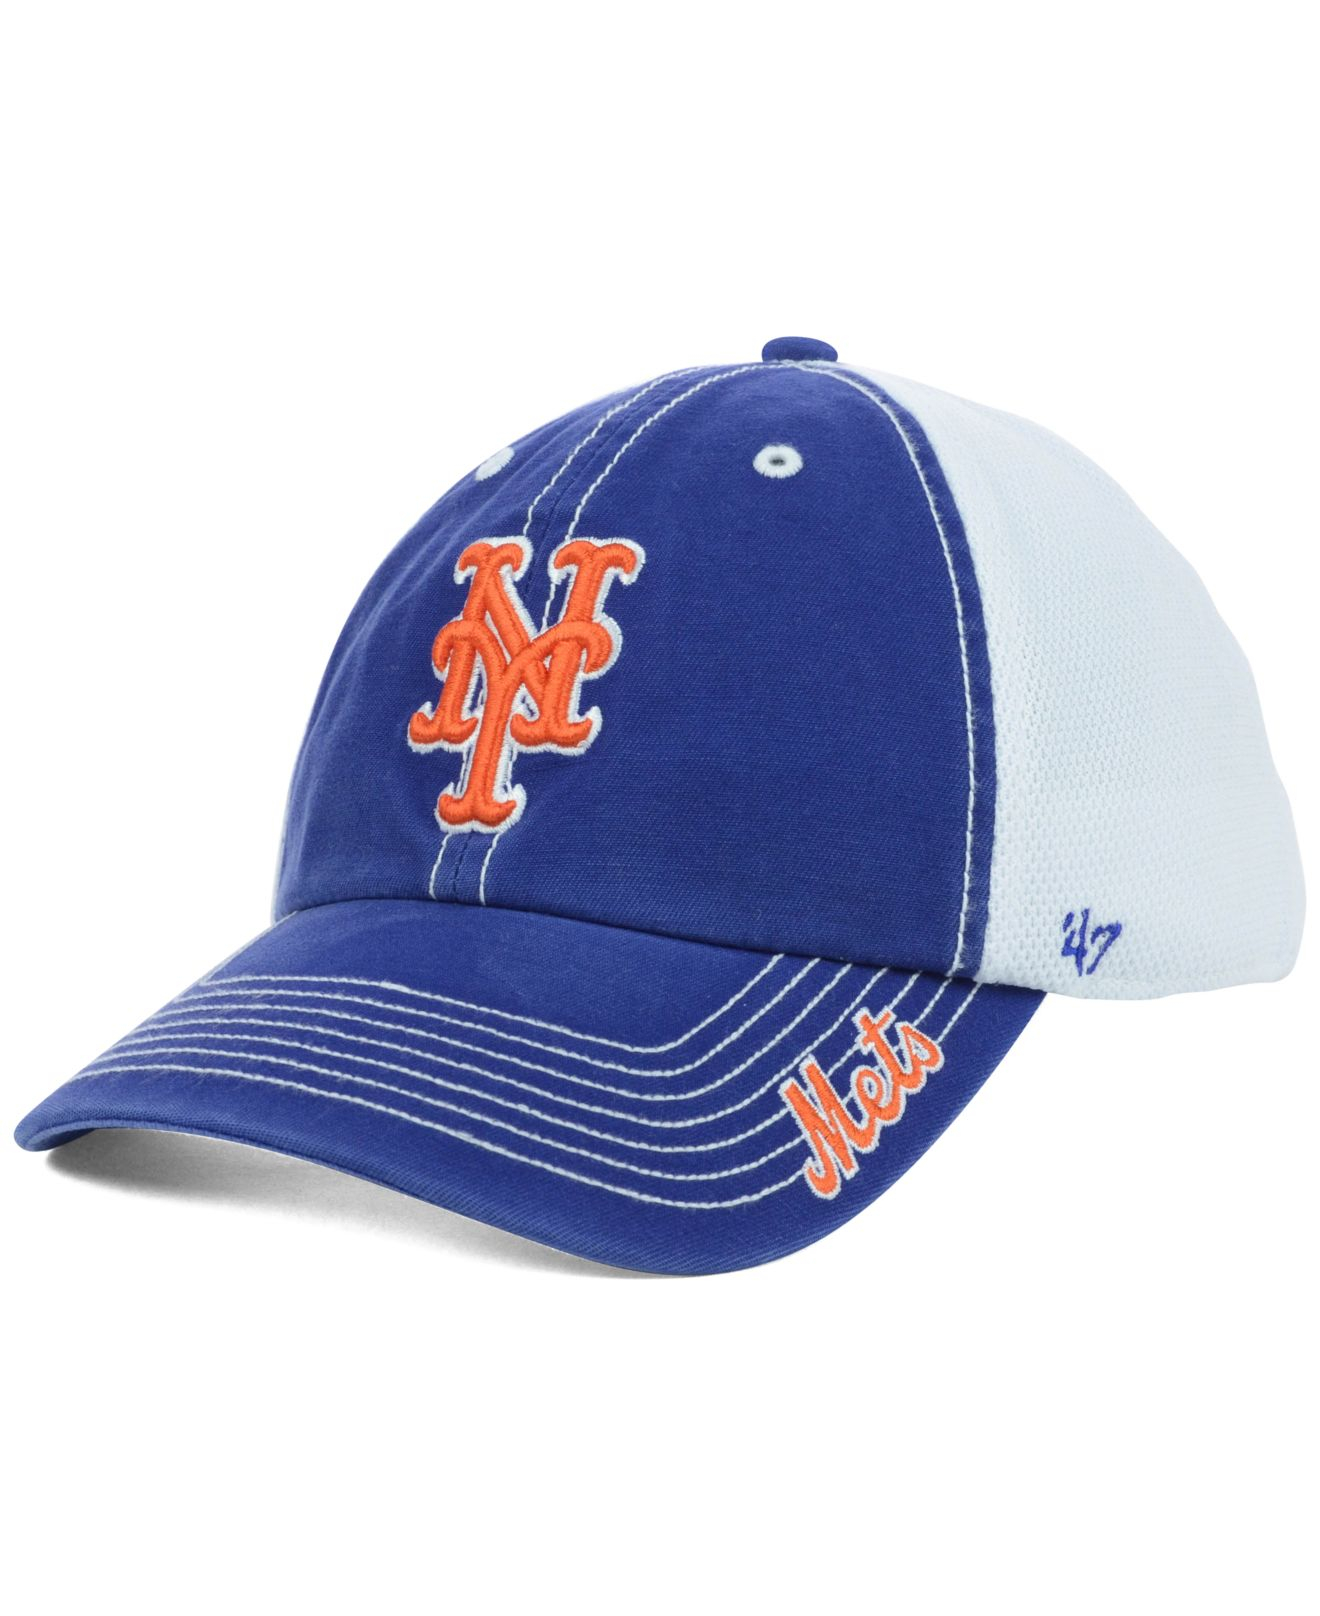 f1ed8a775 Lyst - 47 Brand New York Mets Mlb Ripley Cap in Blue for Men